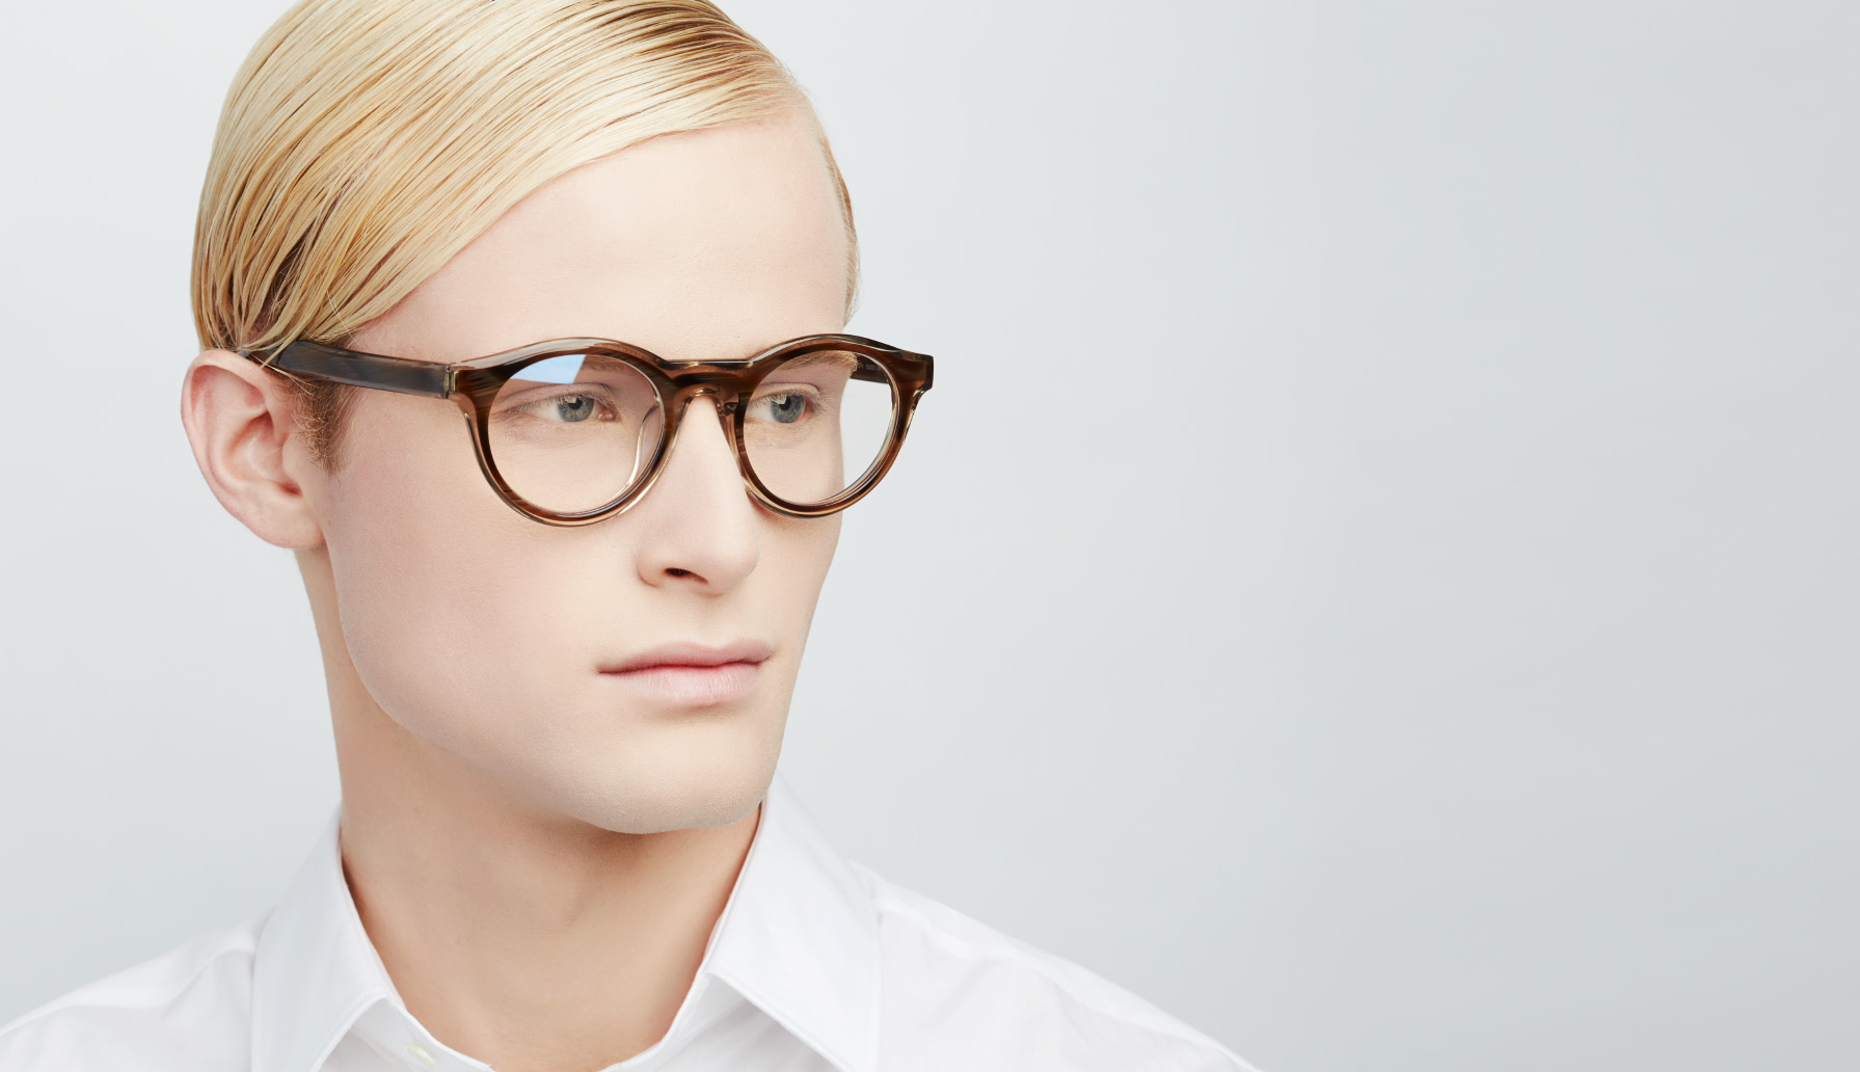 blonde man wearing brown circular glasses San Francisco fashion photographer